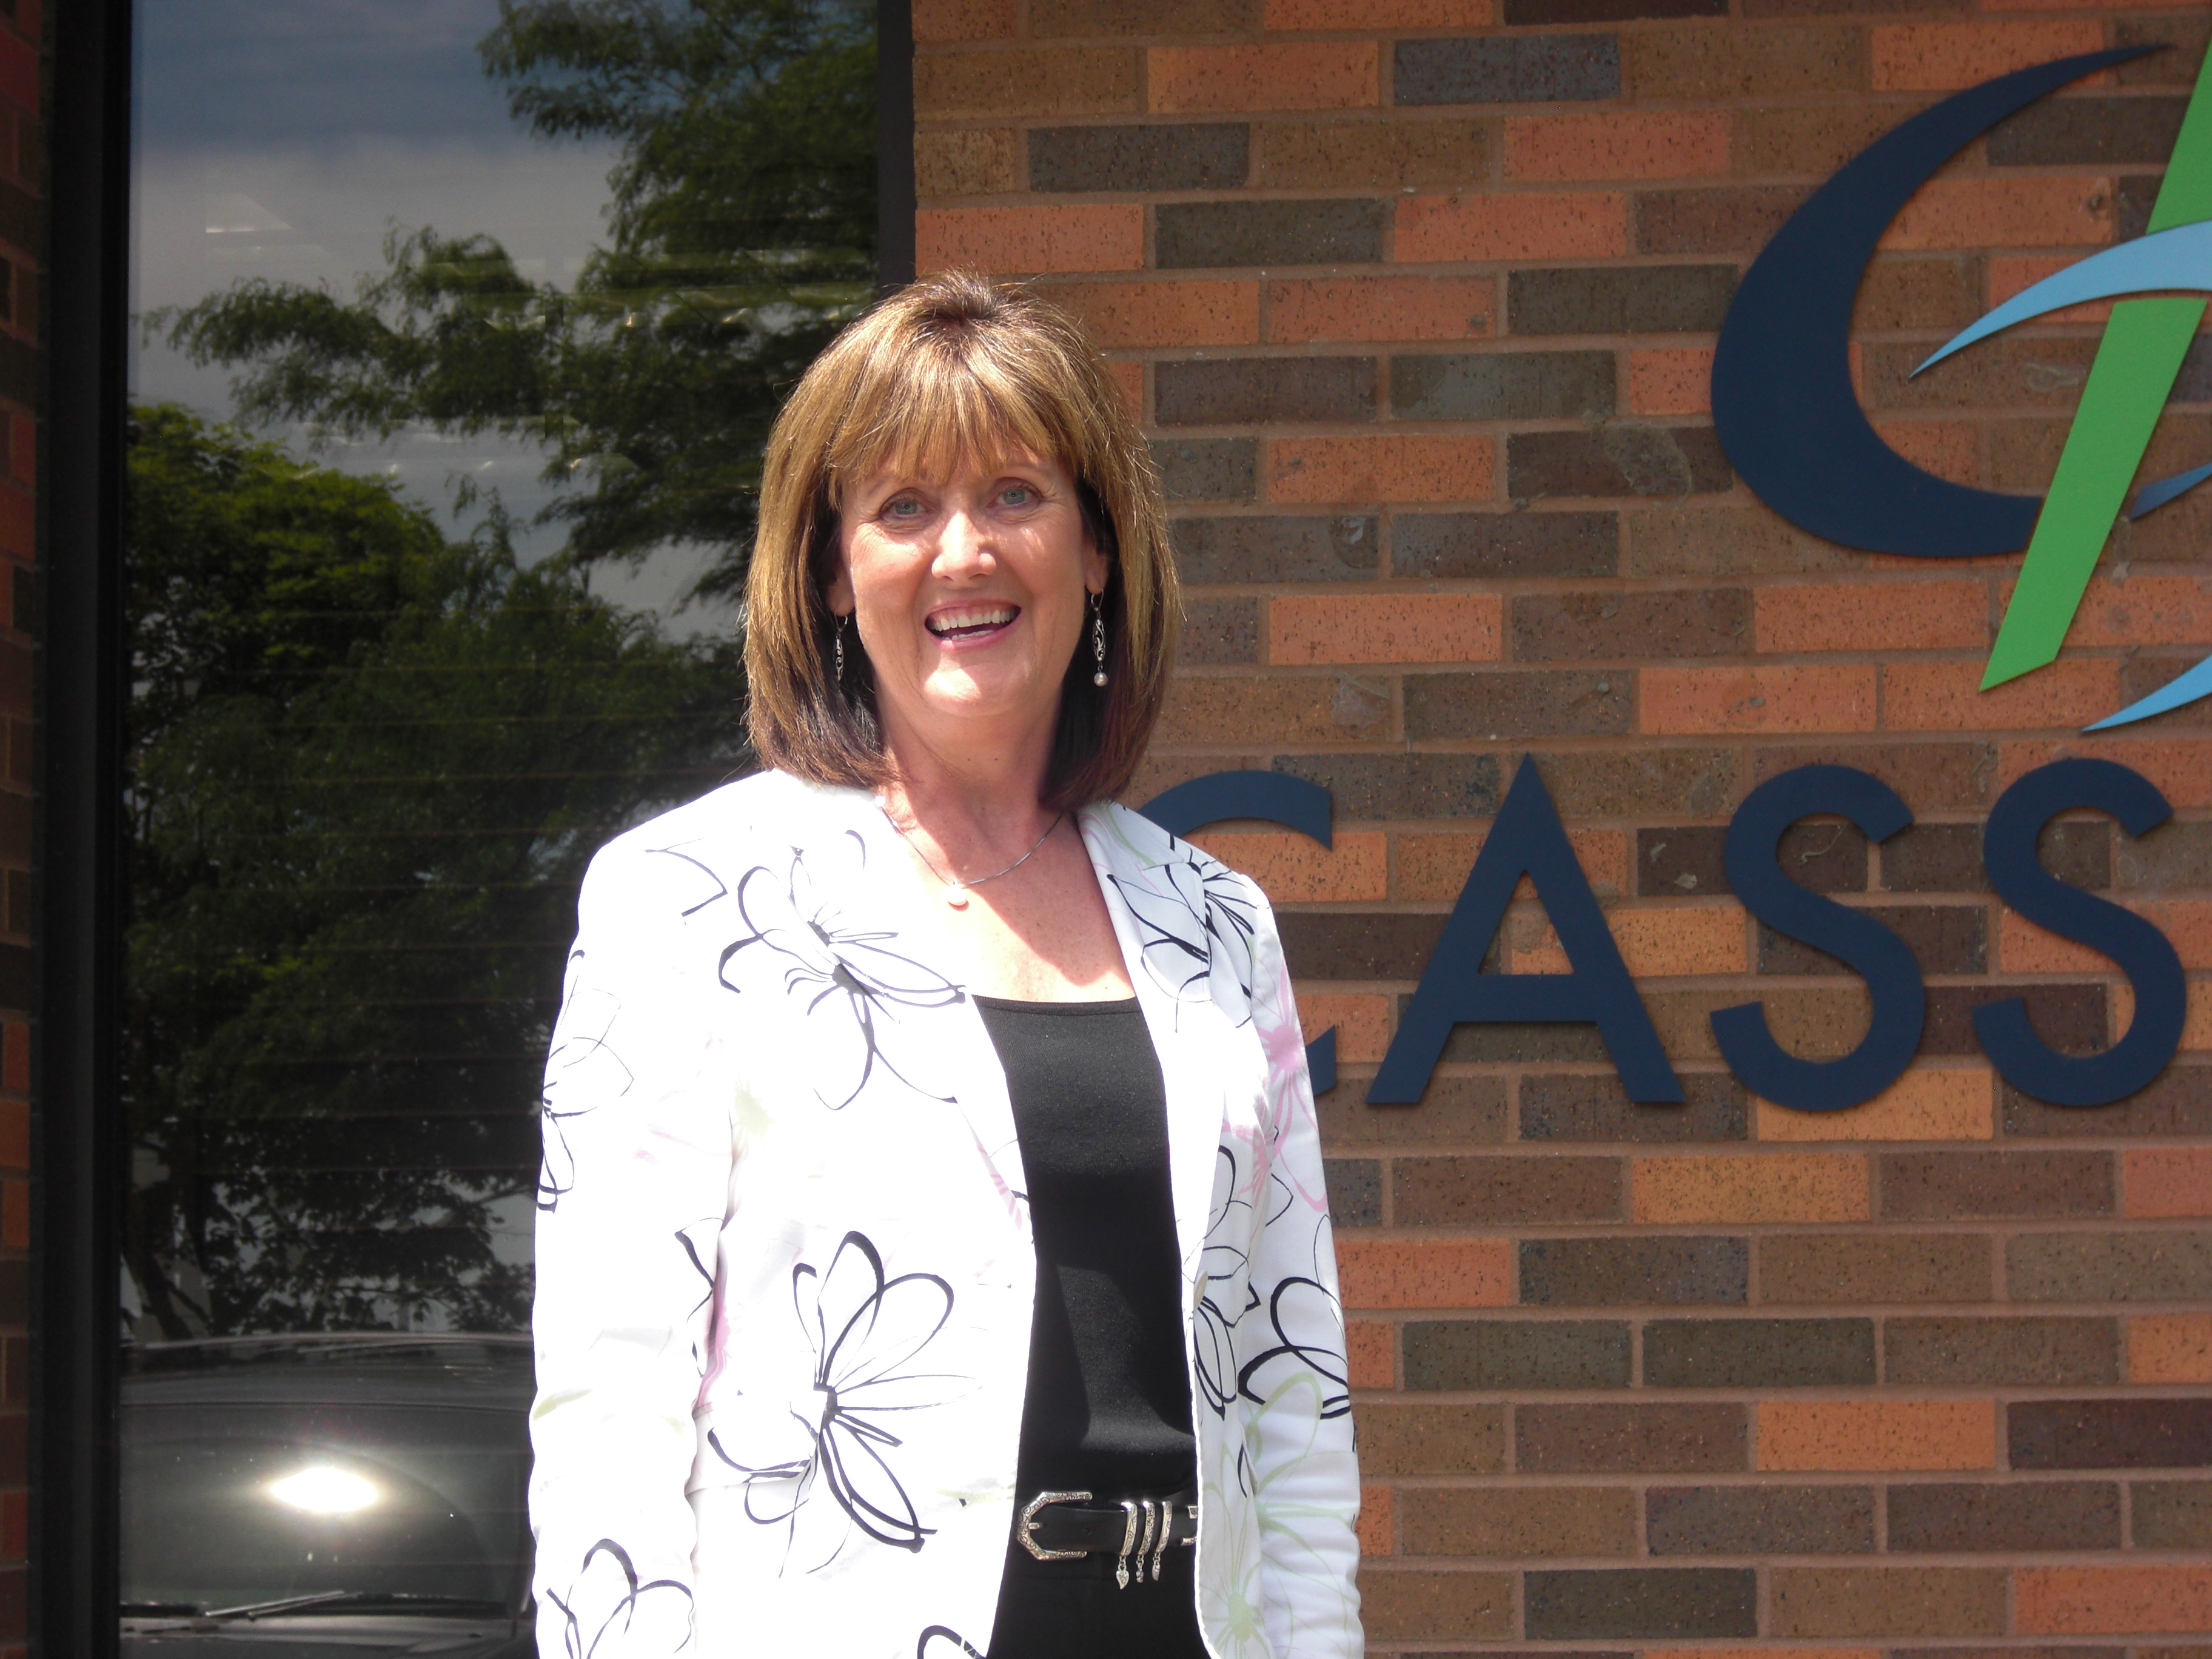 Deb at Cassling HQ